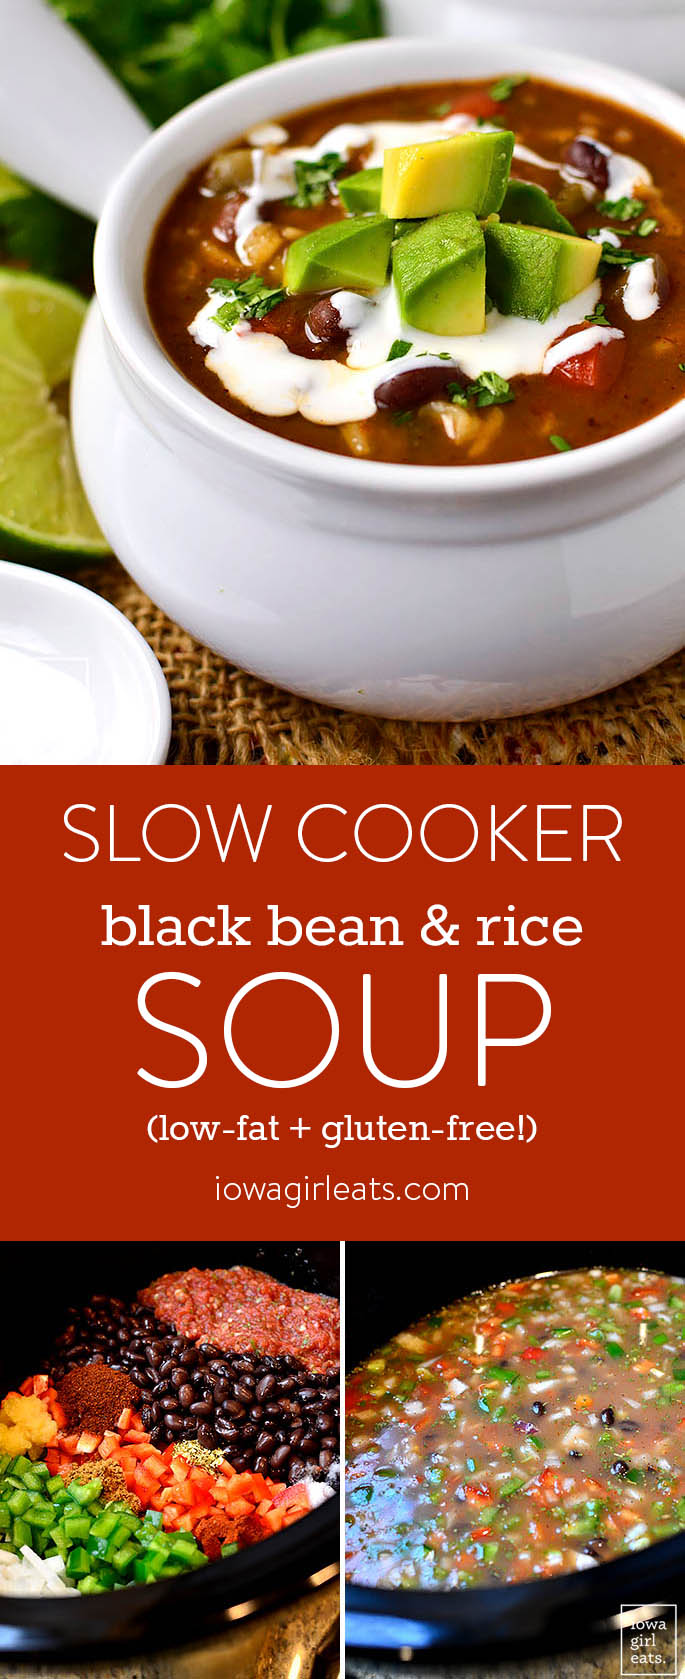 Slow Cooker Black Bean and Rice Soup is a filling, healthy, and hearty gluten-free slow cooker recipe that's easy on the wallet, and waistline! | iowagirleats.com